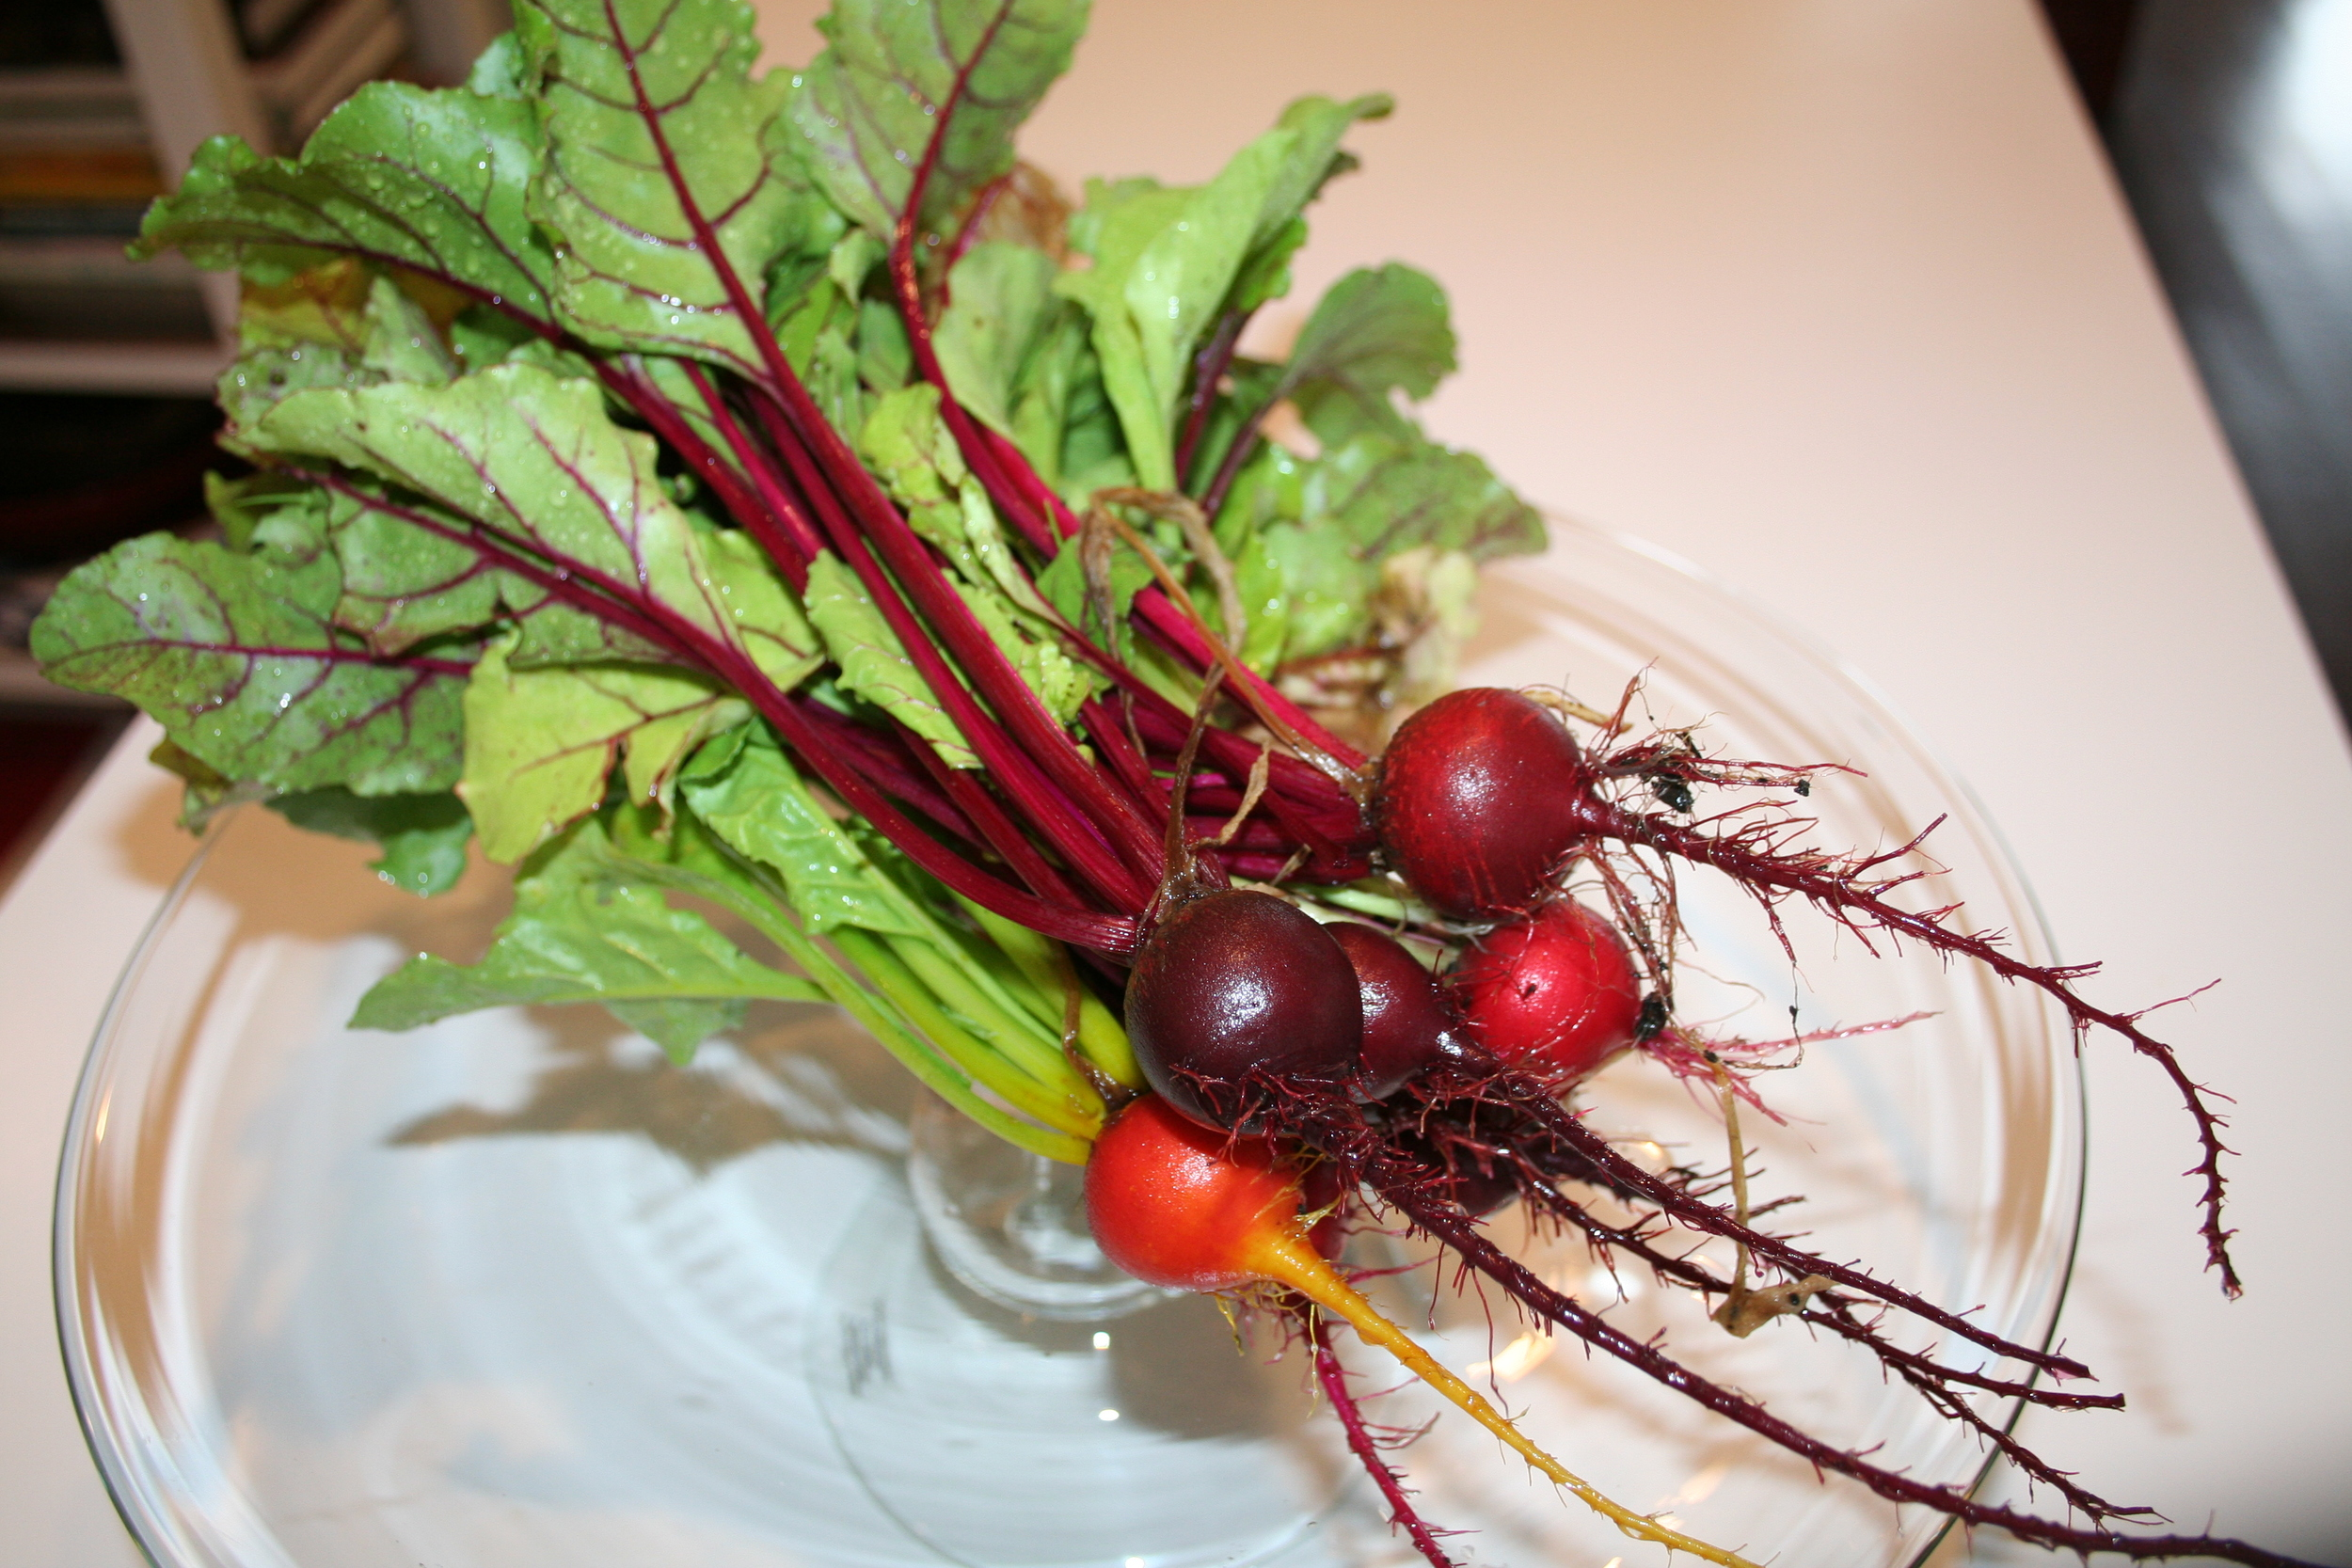 Sunset Green Home Garden Beets.JPG